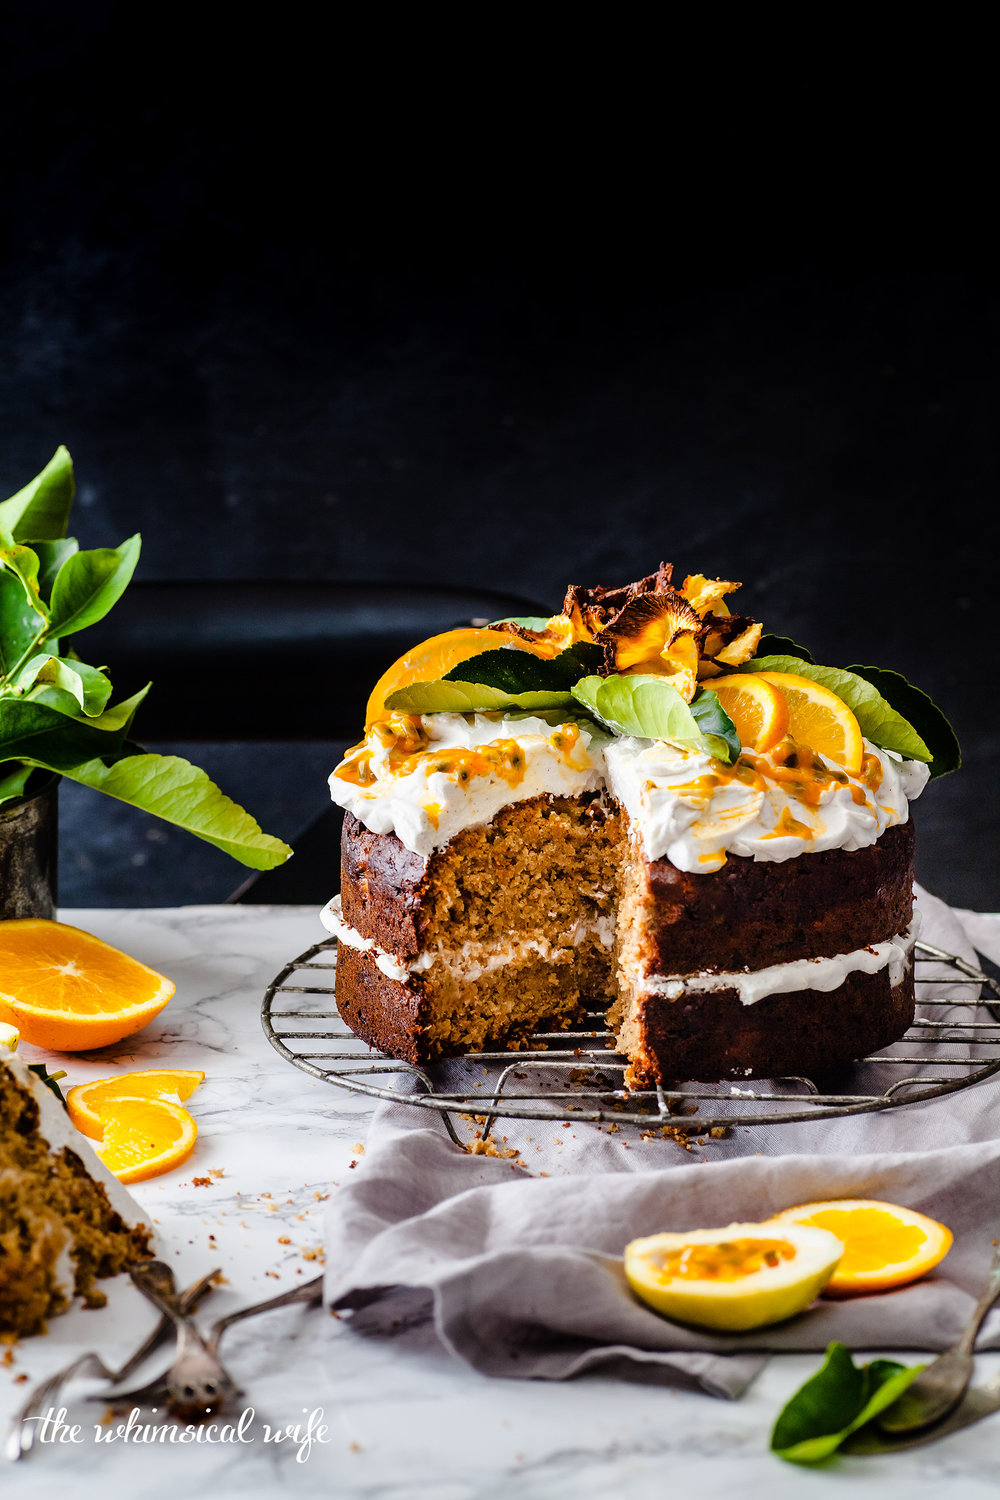 Vegan Humming Bird Cake With Zesty Lemon Coconut Cream | The Whimsical Wife